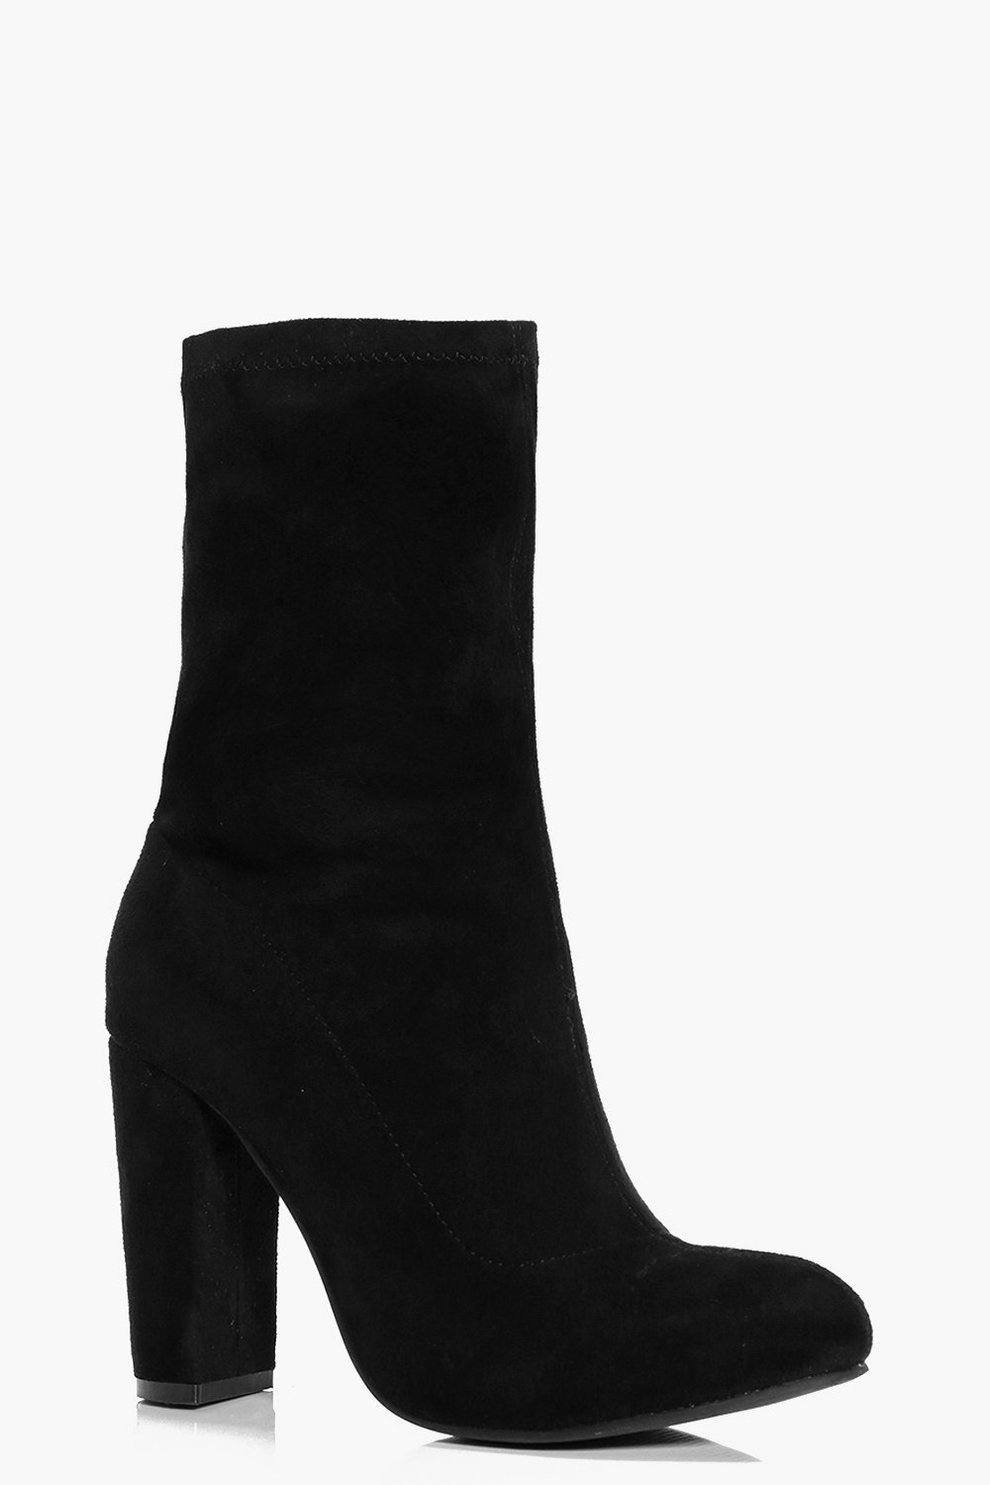 79185ff86403 Womens Black Annie Block Heel Sock Boot. Hover to zoom